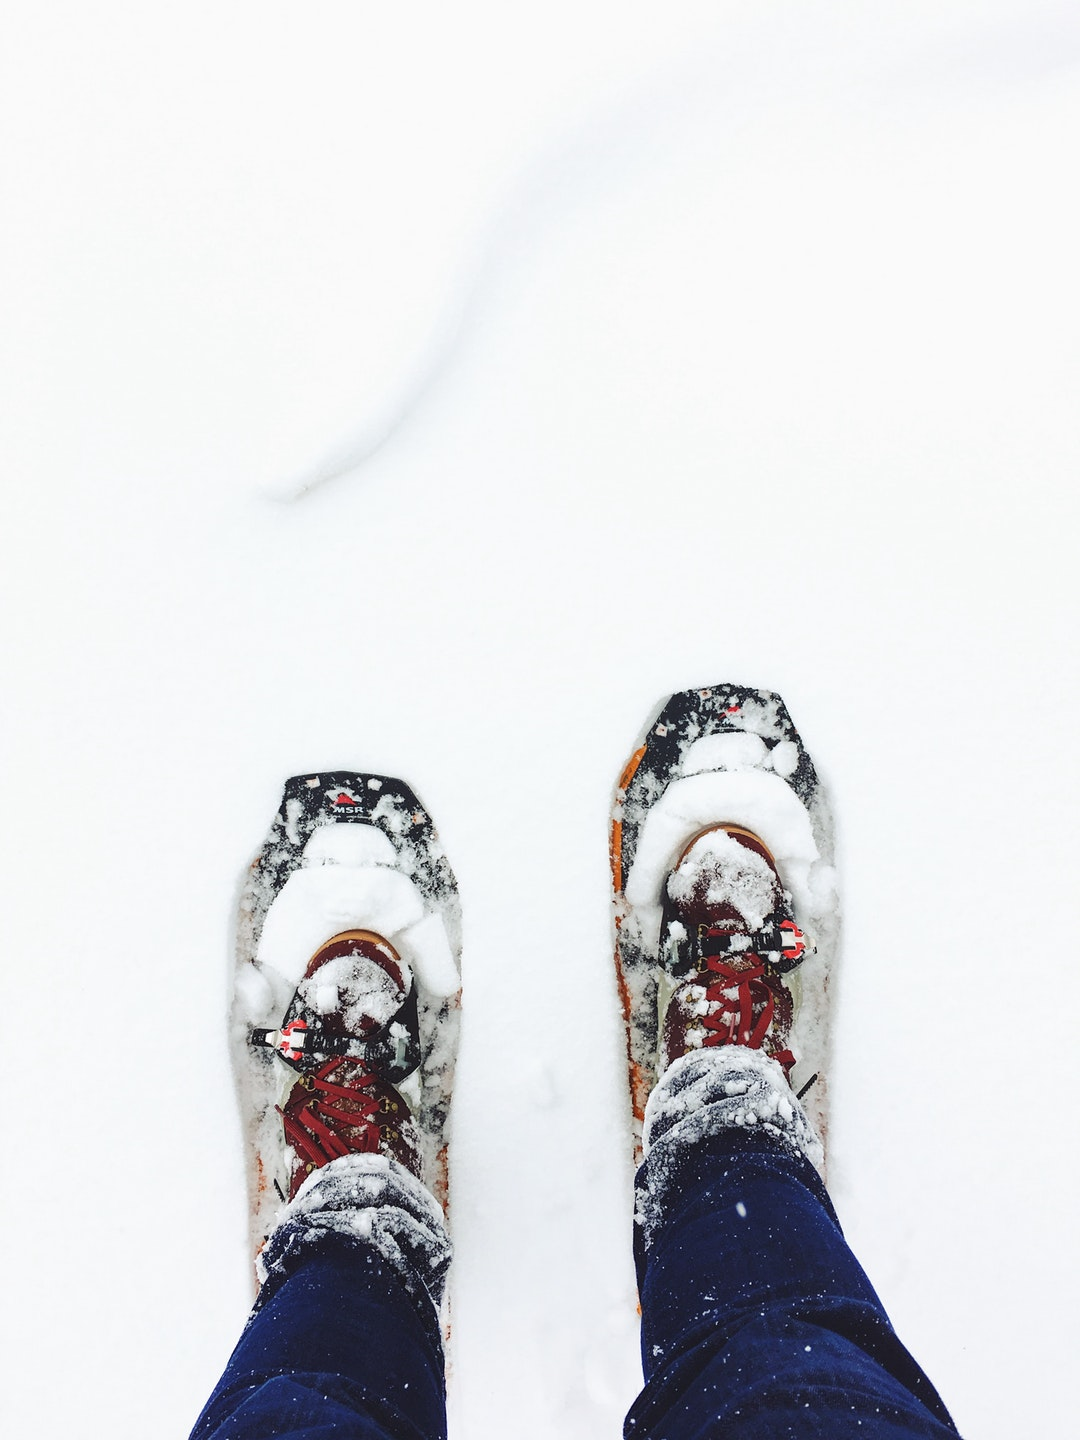 Staring down at a pair of winter shoes in the snow in Kamas, Utah